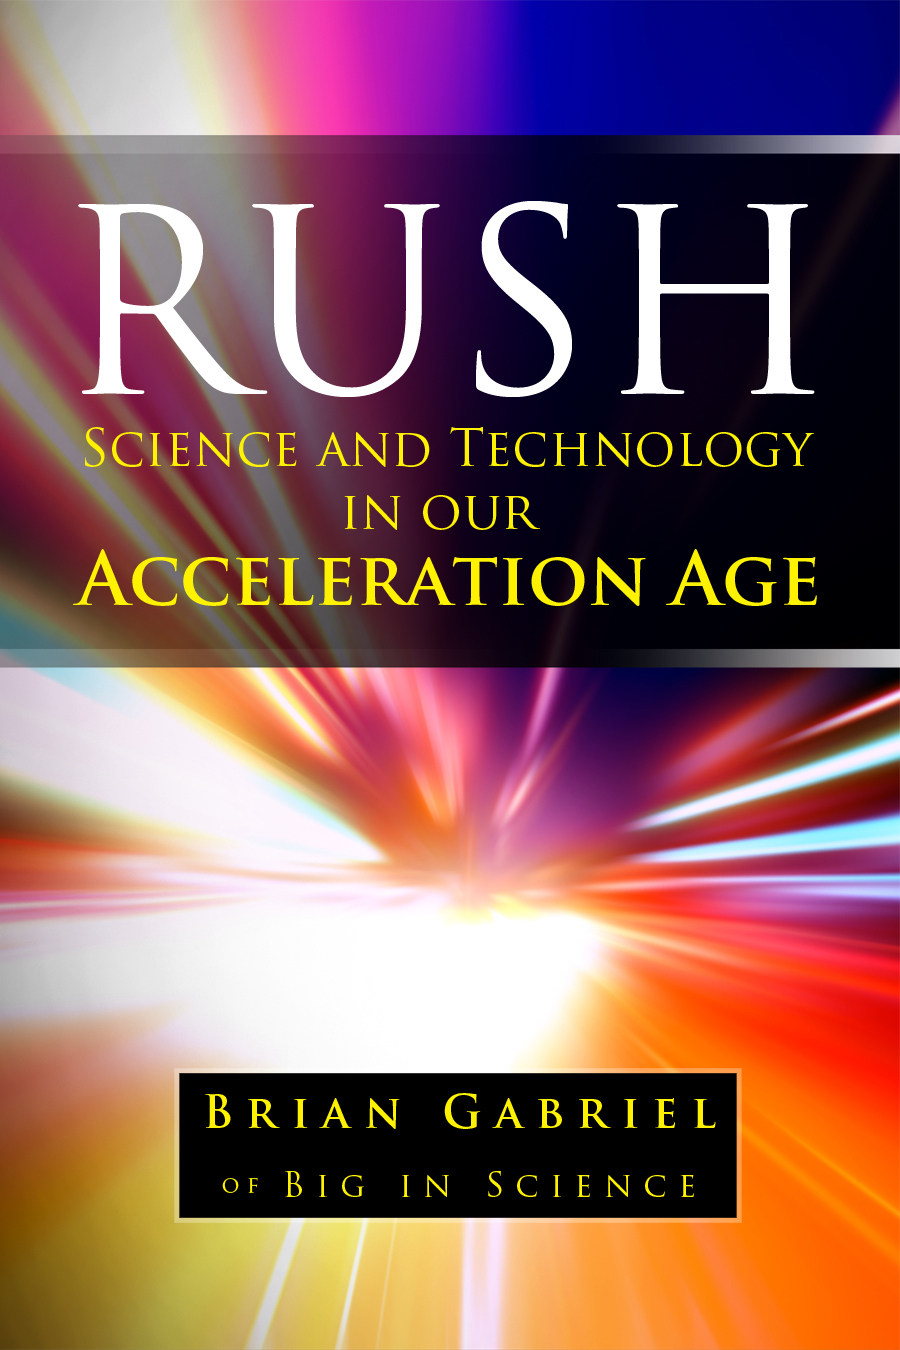 Rush: Science and Technology in Our Acceleration Age